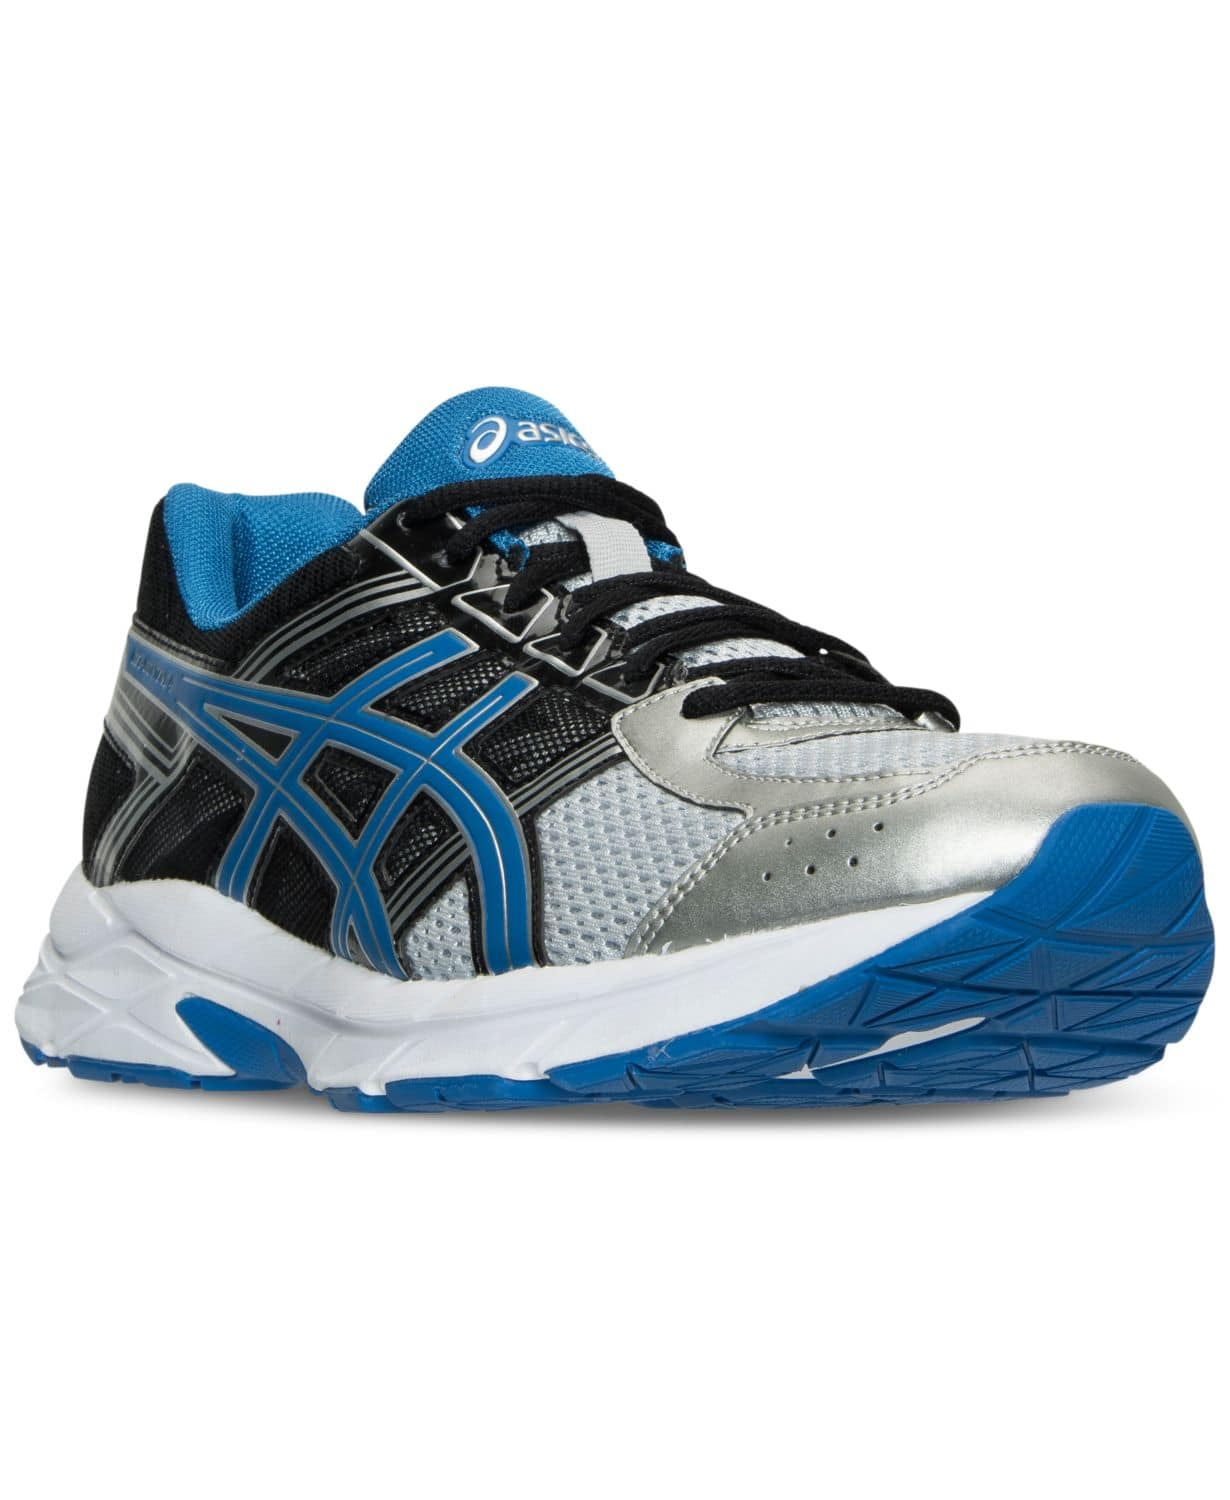 Asics Men's GEL-Contend 4 Running Sneakers - Half Price at Macy's $35